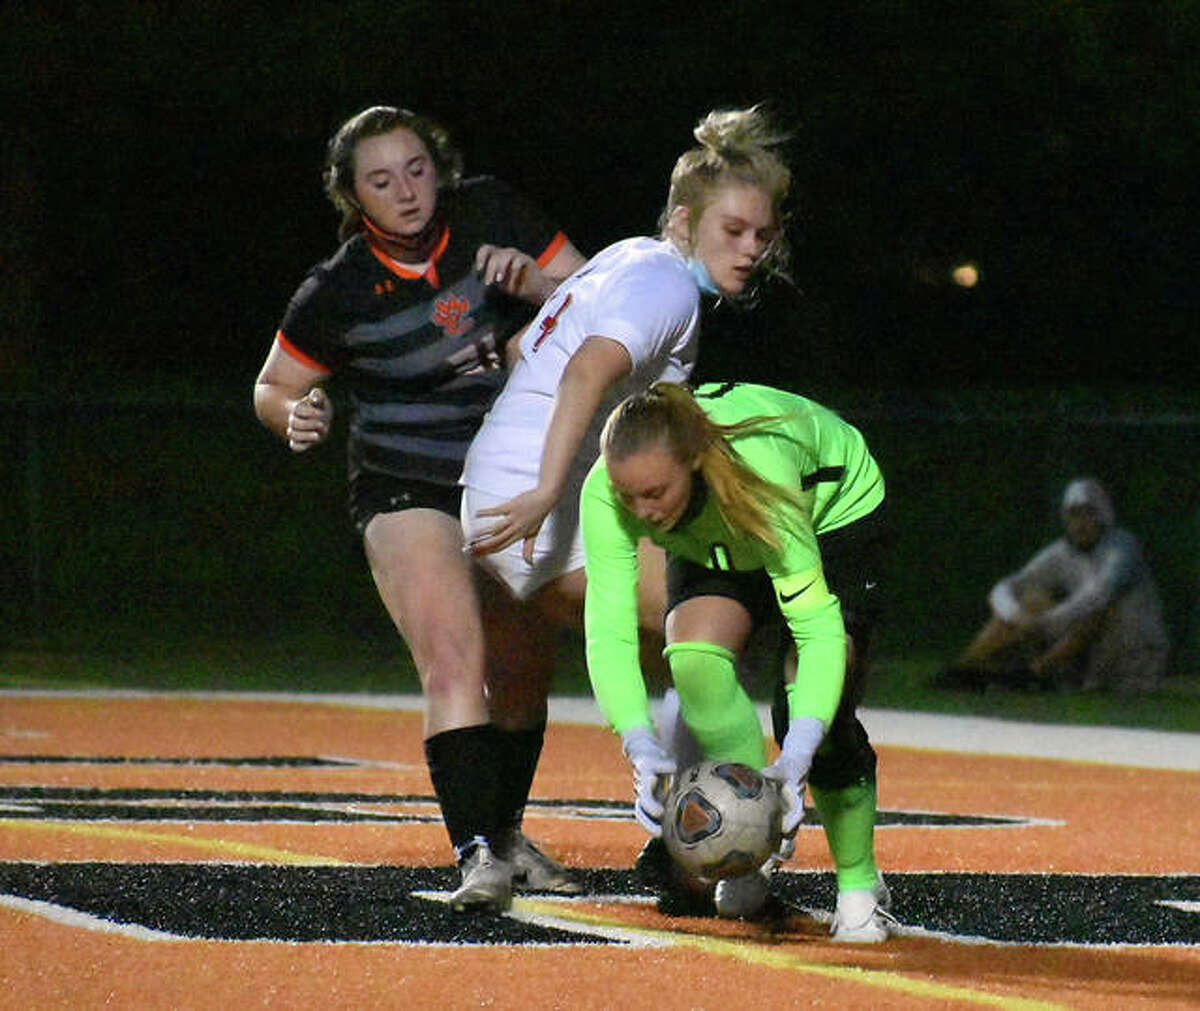 Alton keeper Addison Miller scoops up the ball in front of defender Taylor Freer and Edwardsville forward Kearsten Naney in the second half on Tuesday in Edwardsville.